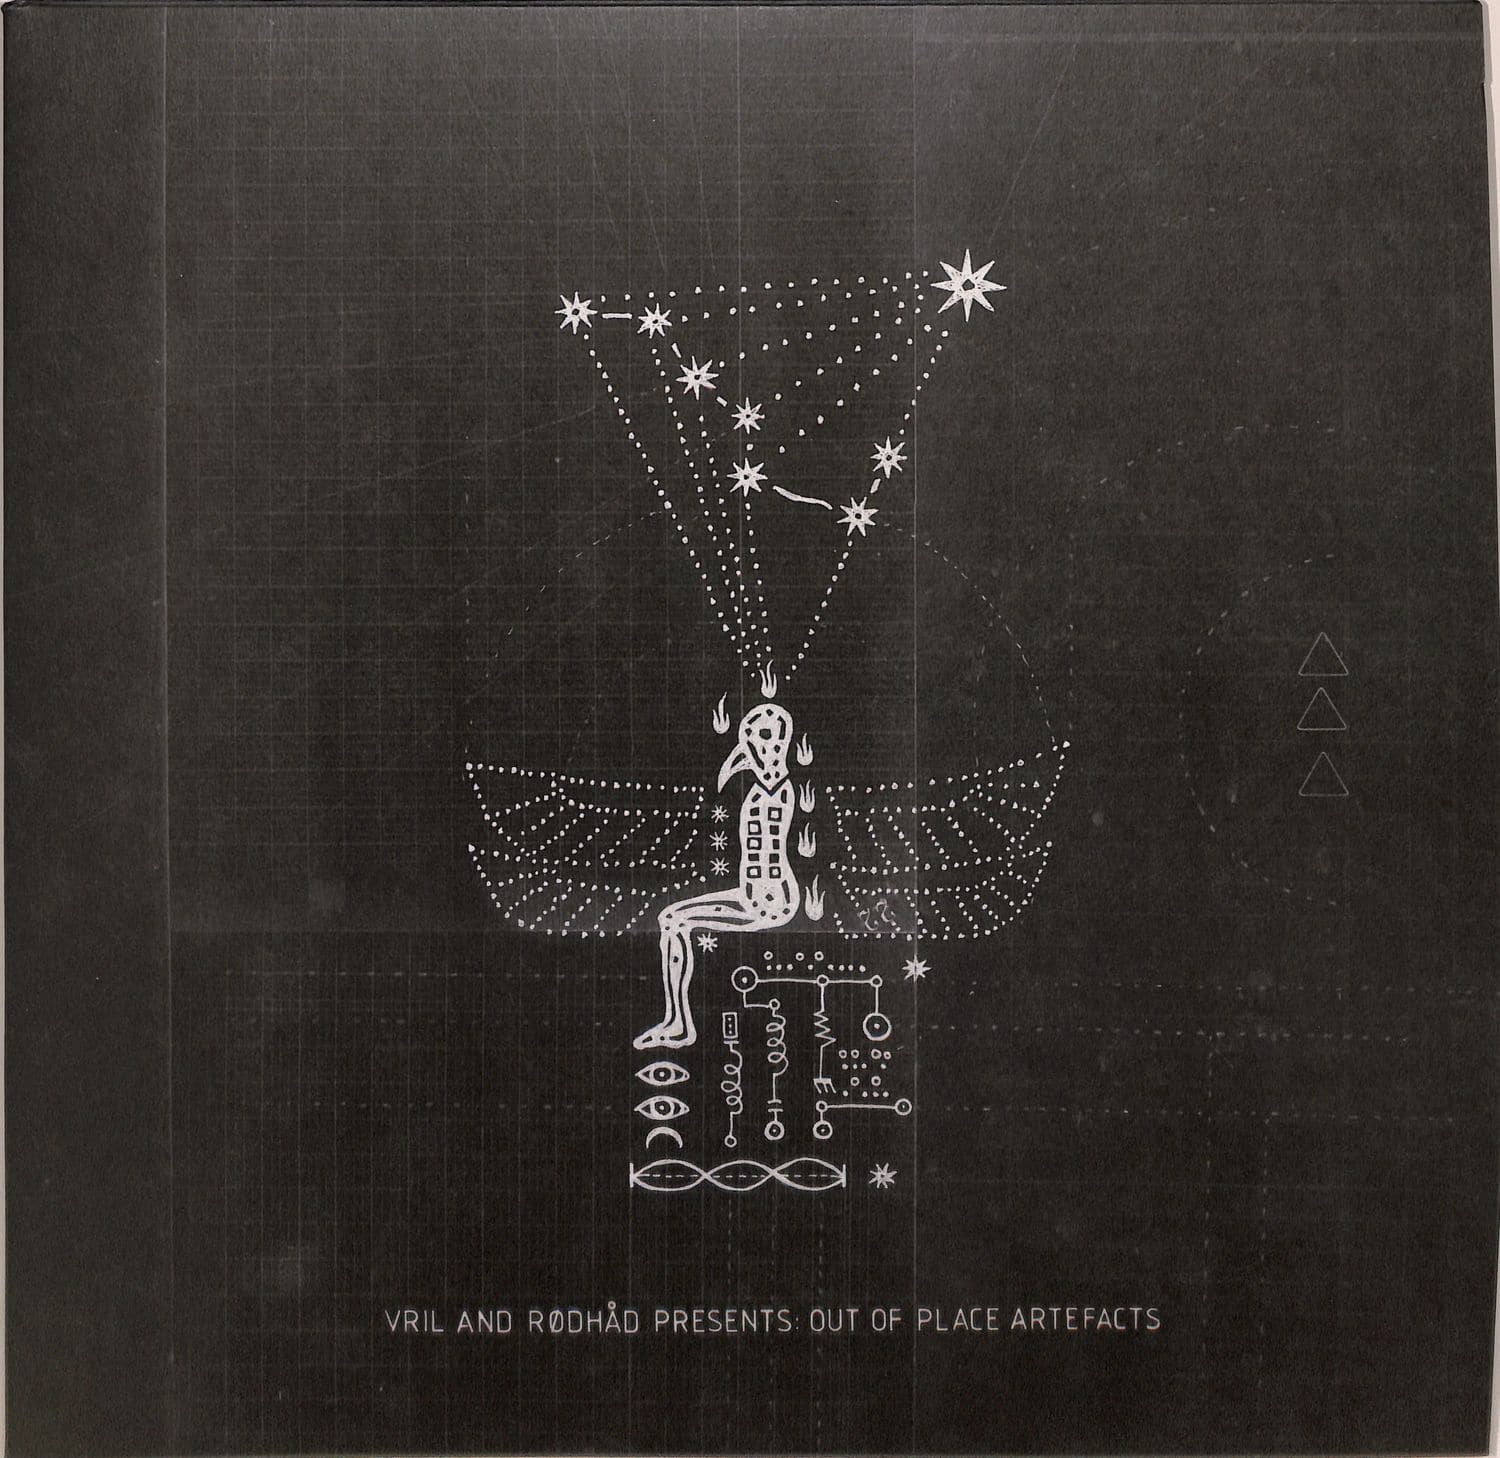 Vril & Rodhad Presents - OUT OF PLACE ARTEFACTS